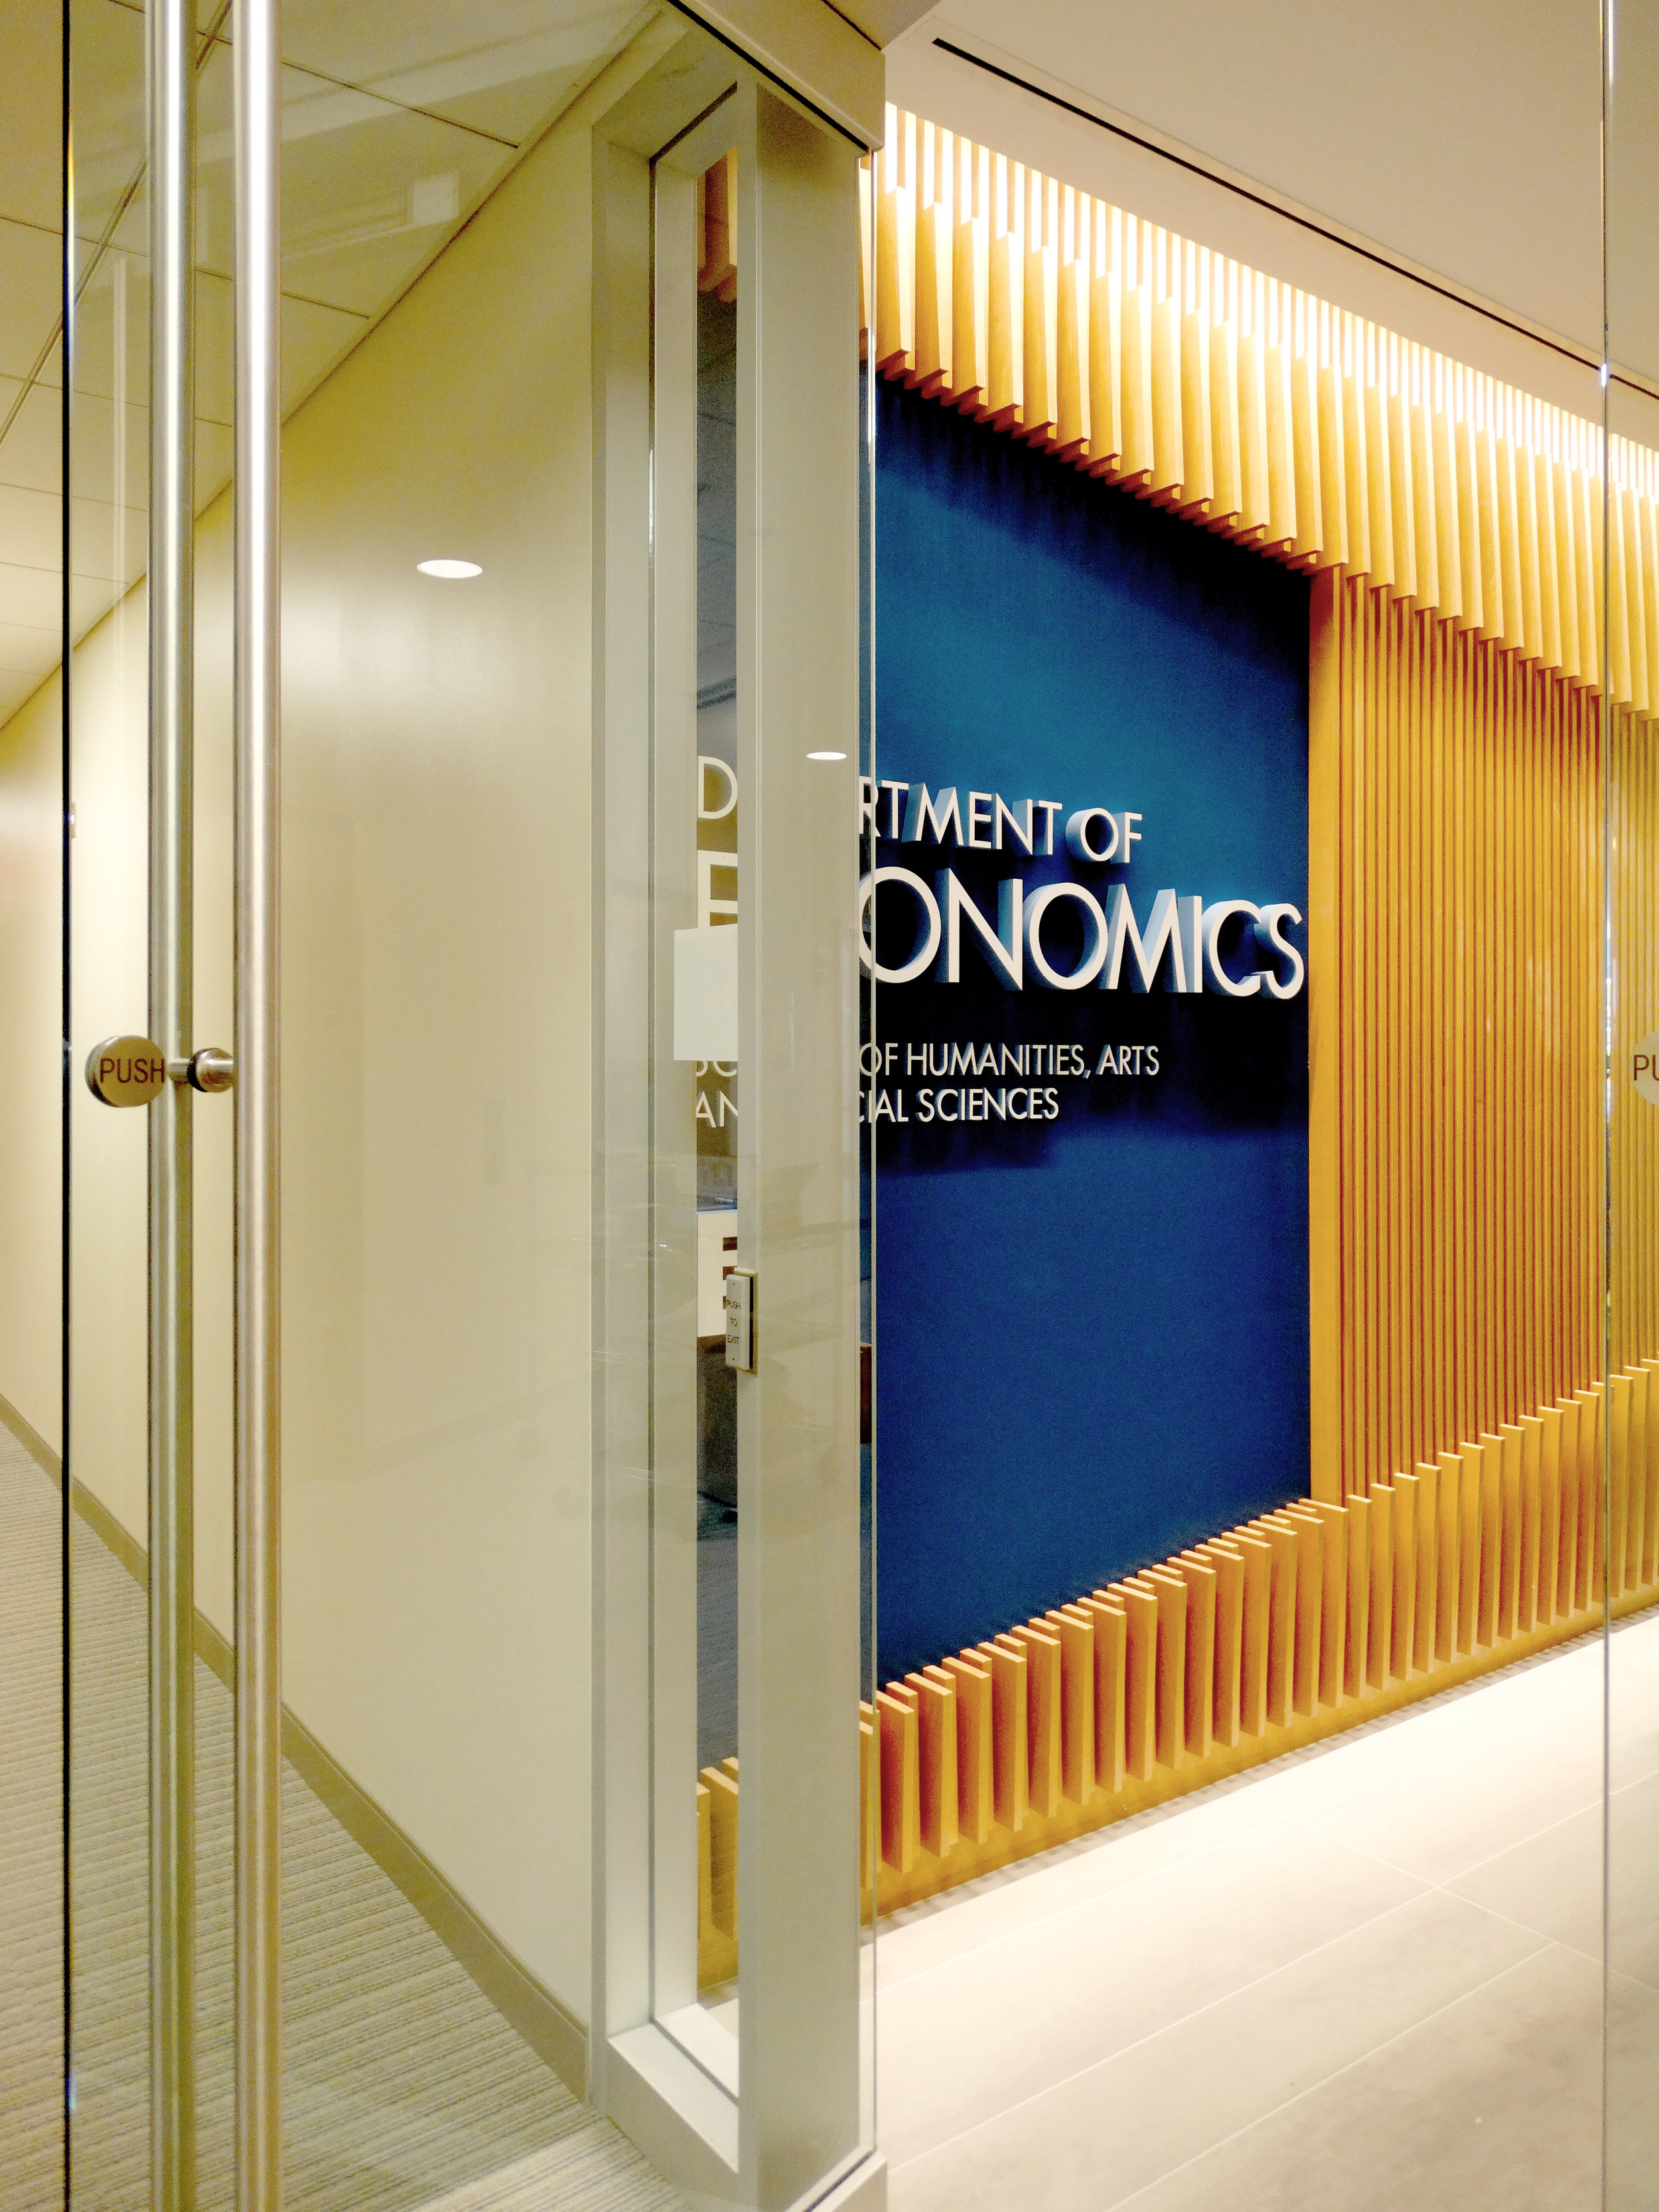 Encase Frameless Glass Pivot Door Push Pull Signage Indicators - Spaceworks AI.jpg